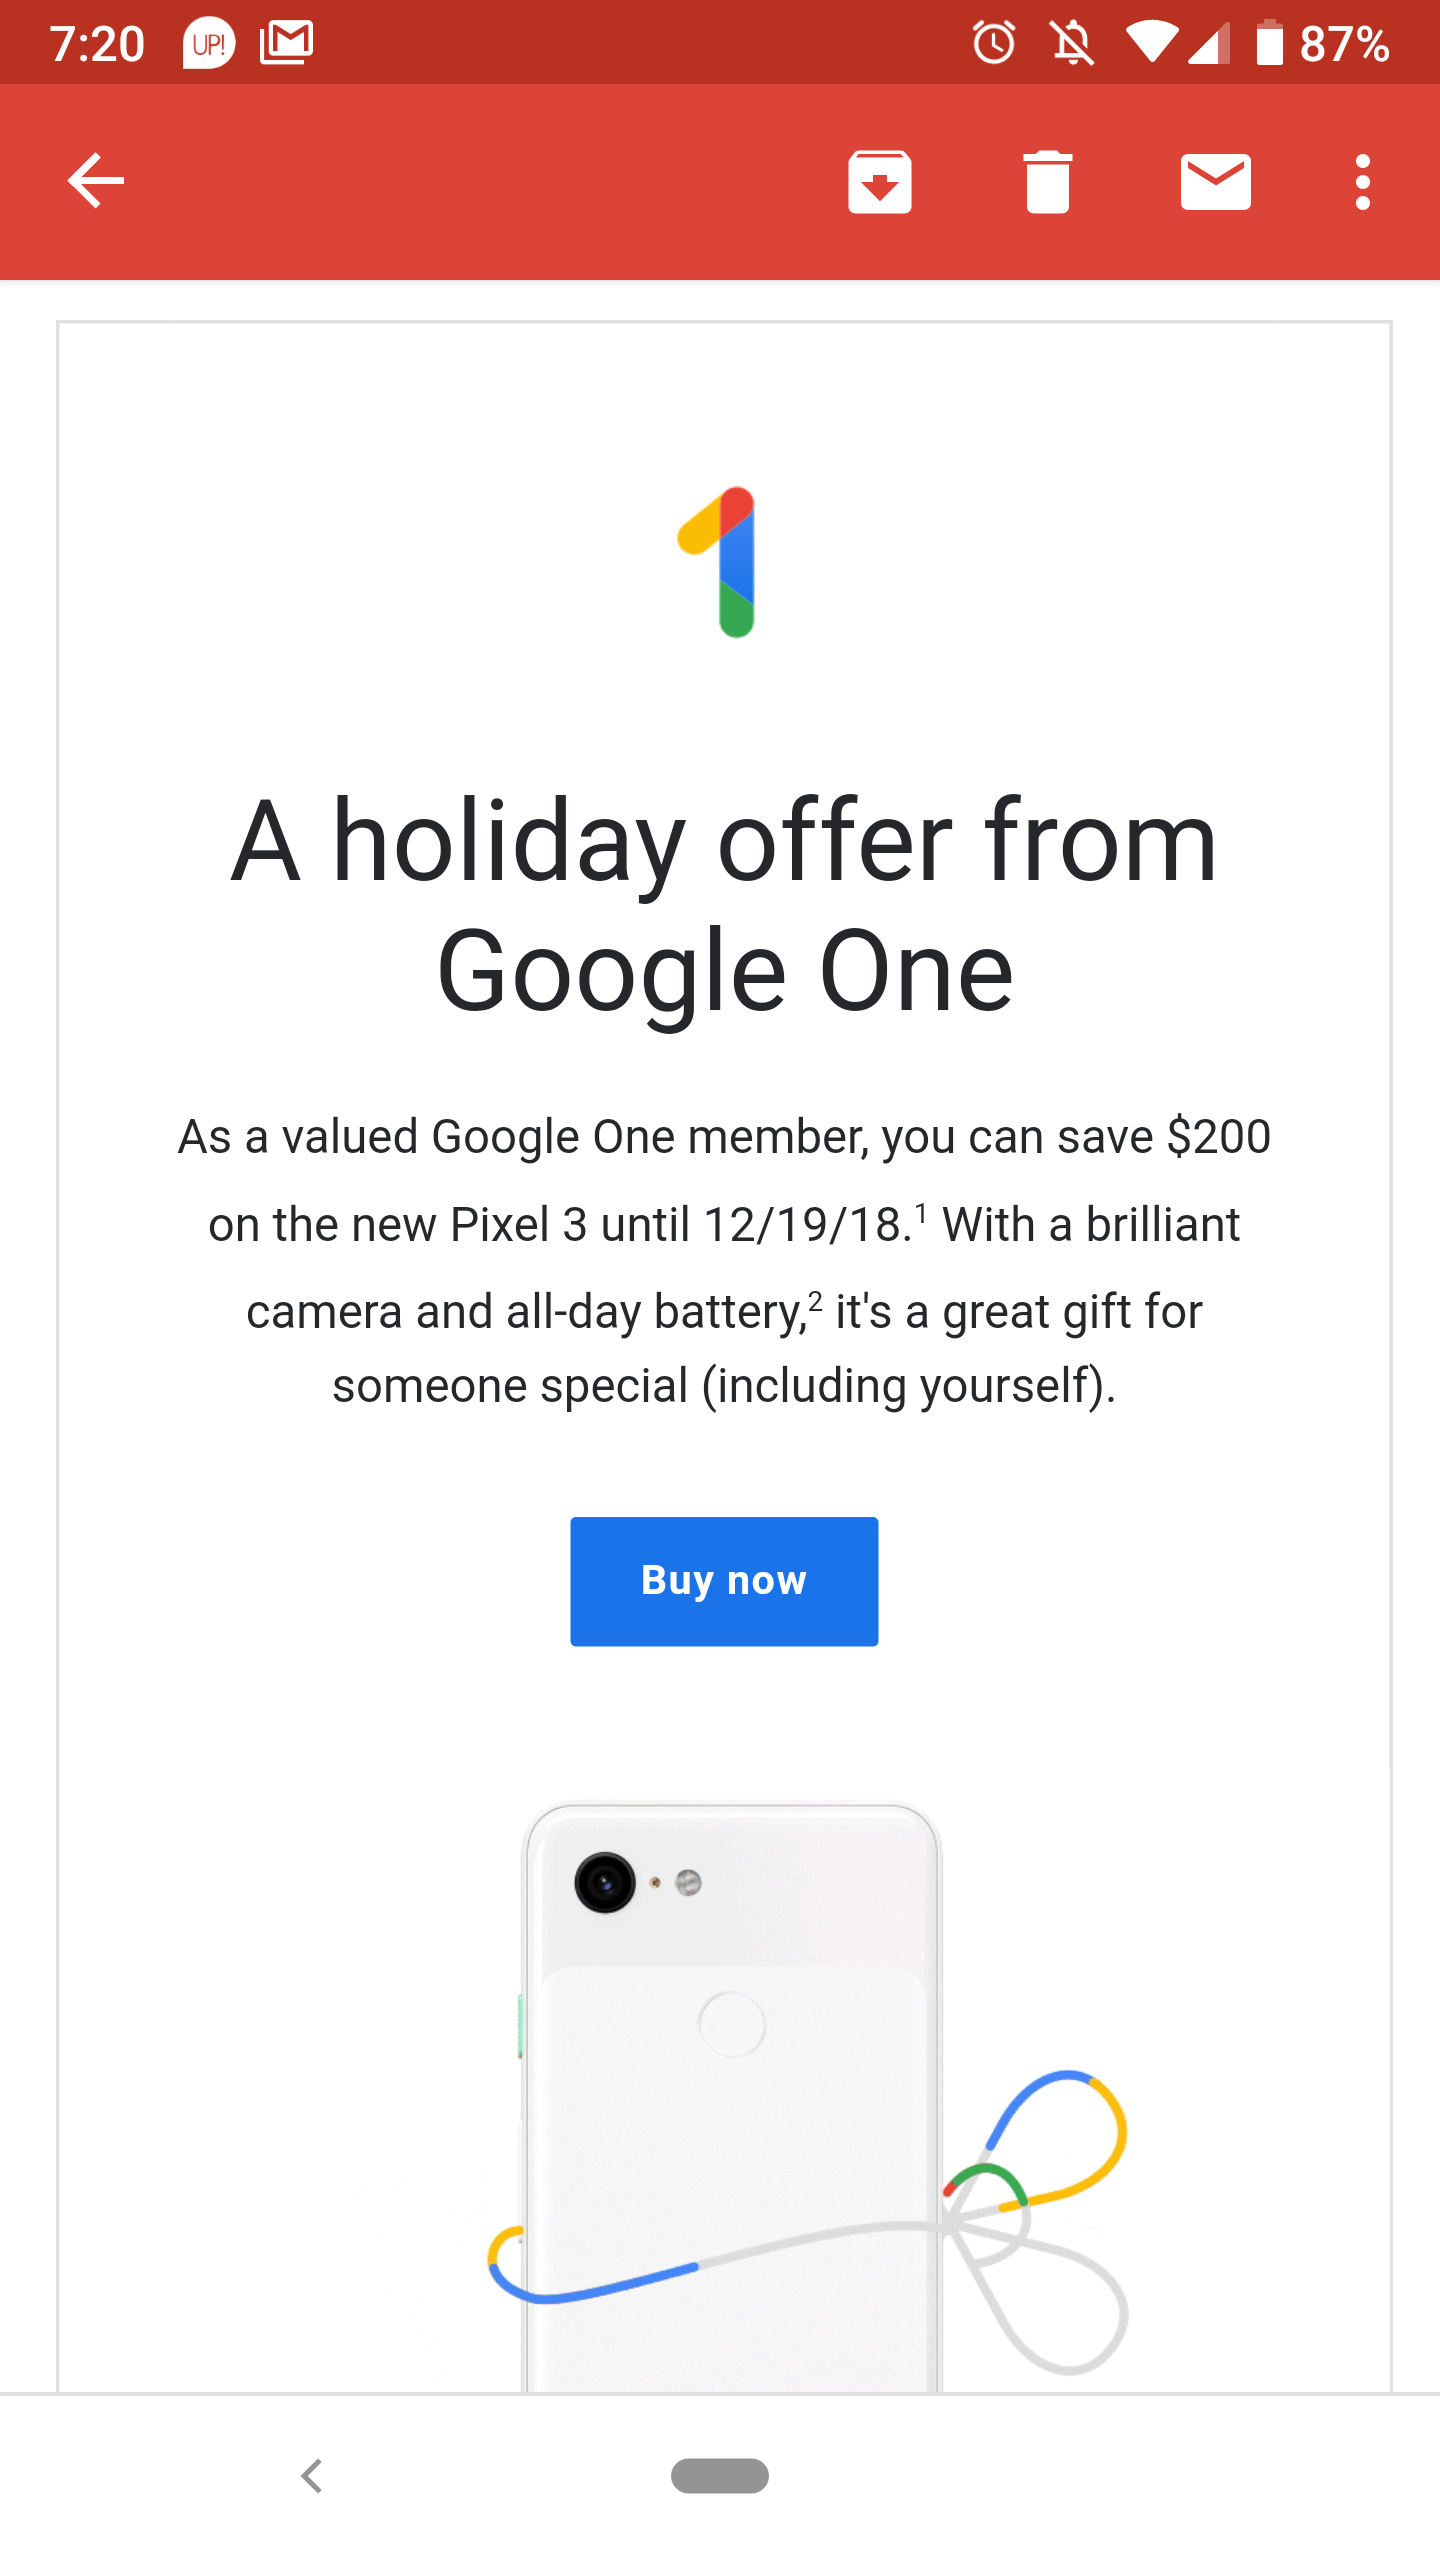 Google One subscribers getting offers for $125 or $200 off the Pixel